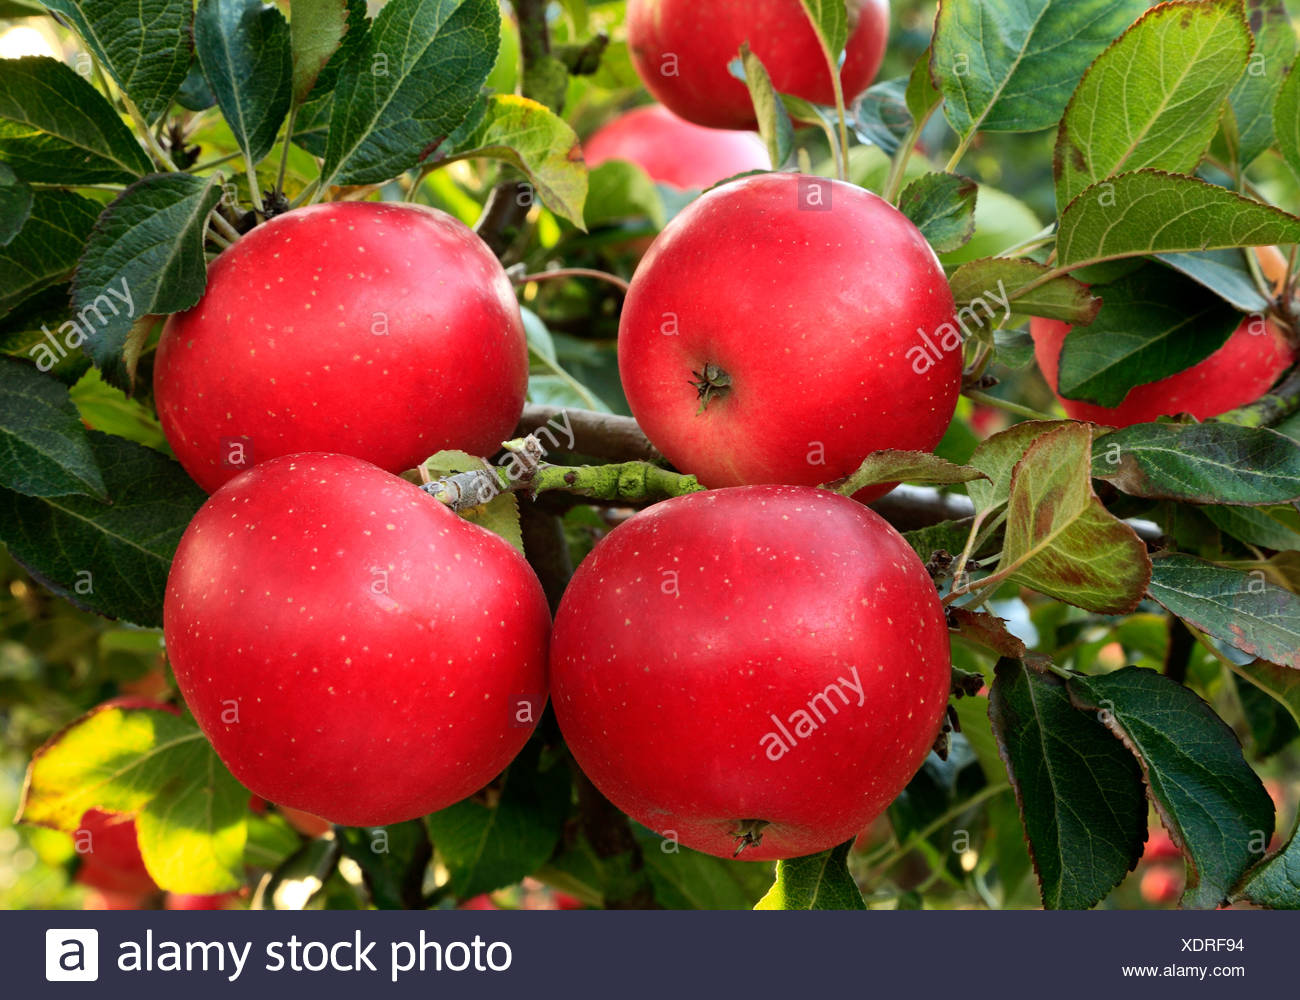 Apple 'Discovery', malus domestica, red apples, named variety varieties growing on tree - Stock Image